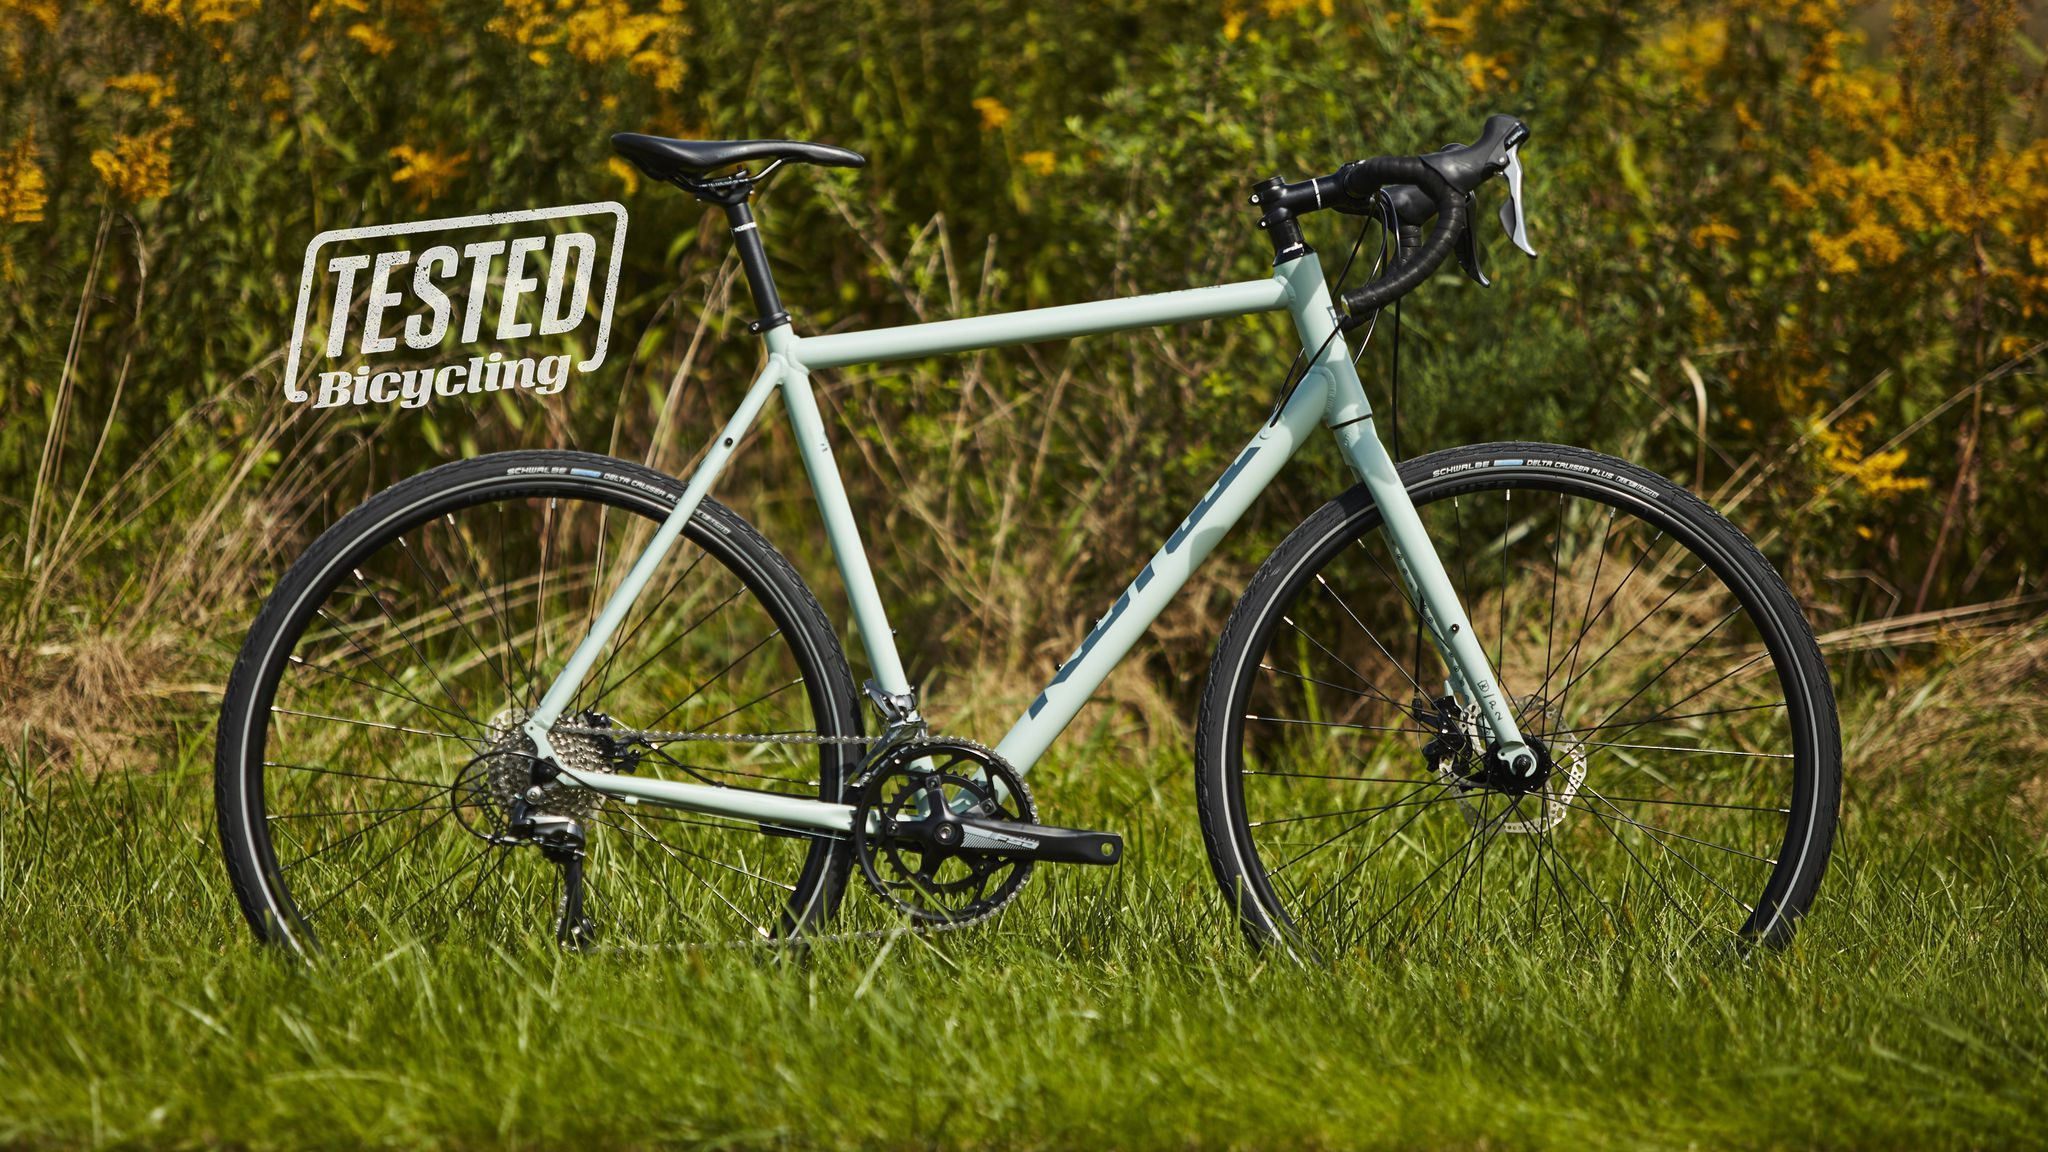 37 Images And Full Review Of The Fantastically Cheap Kona Rove